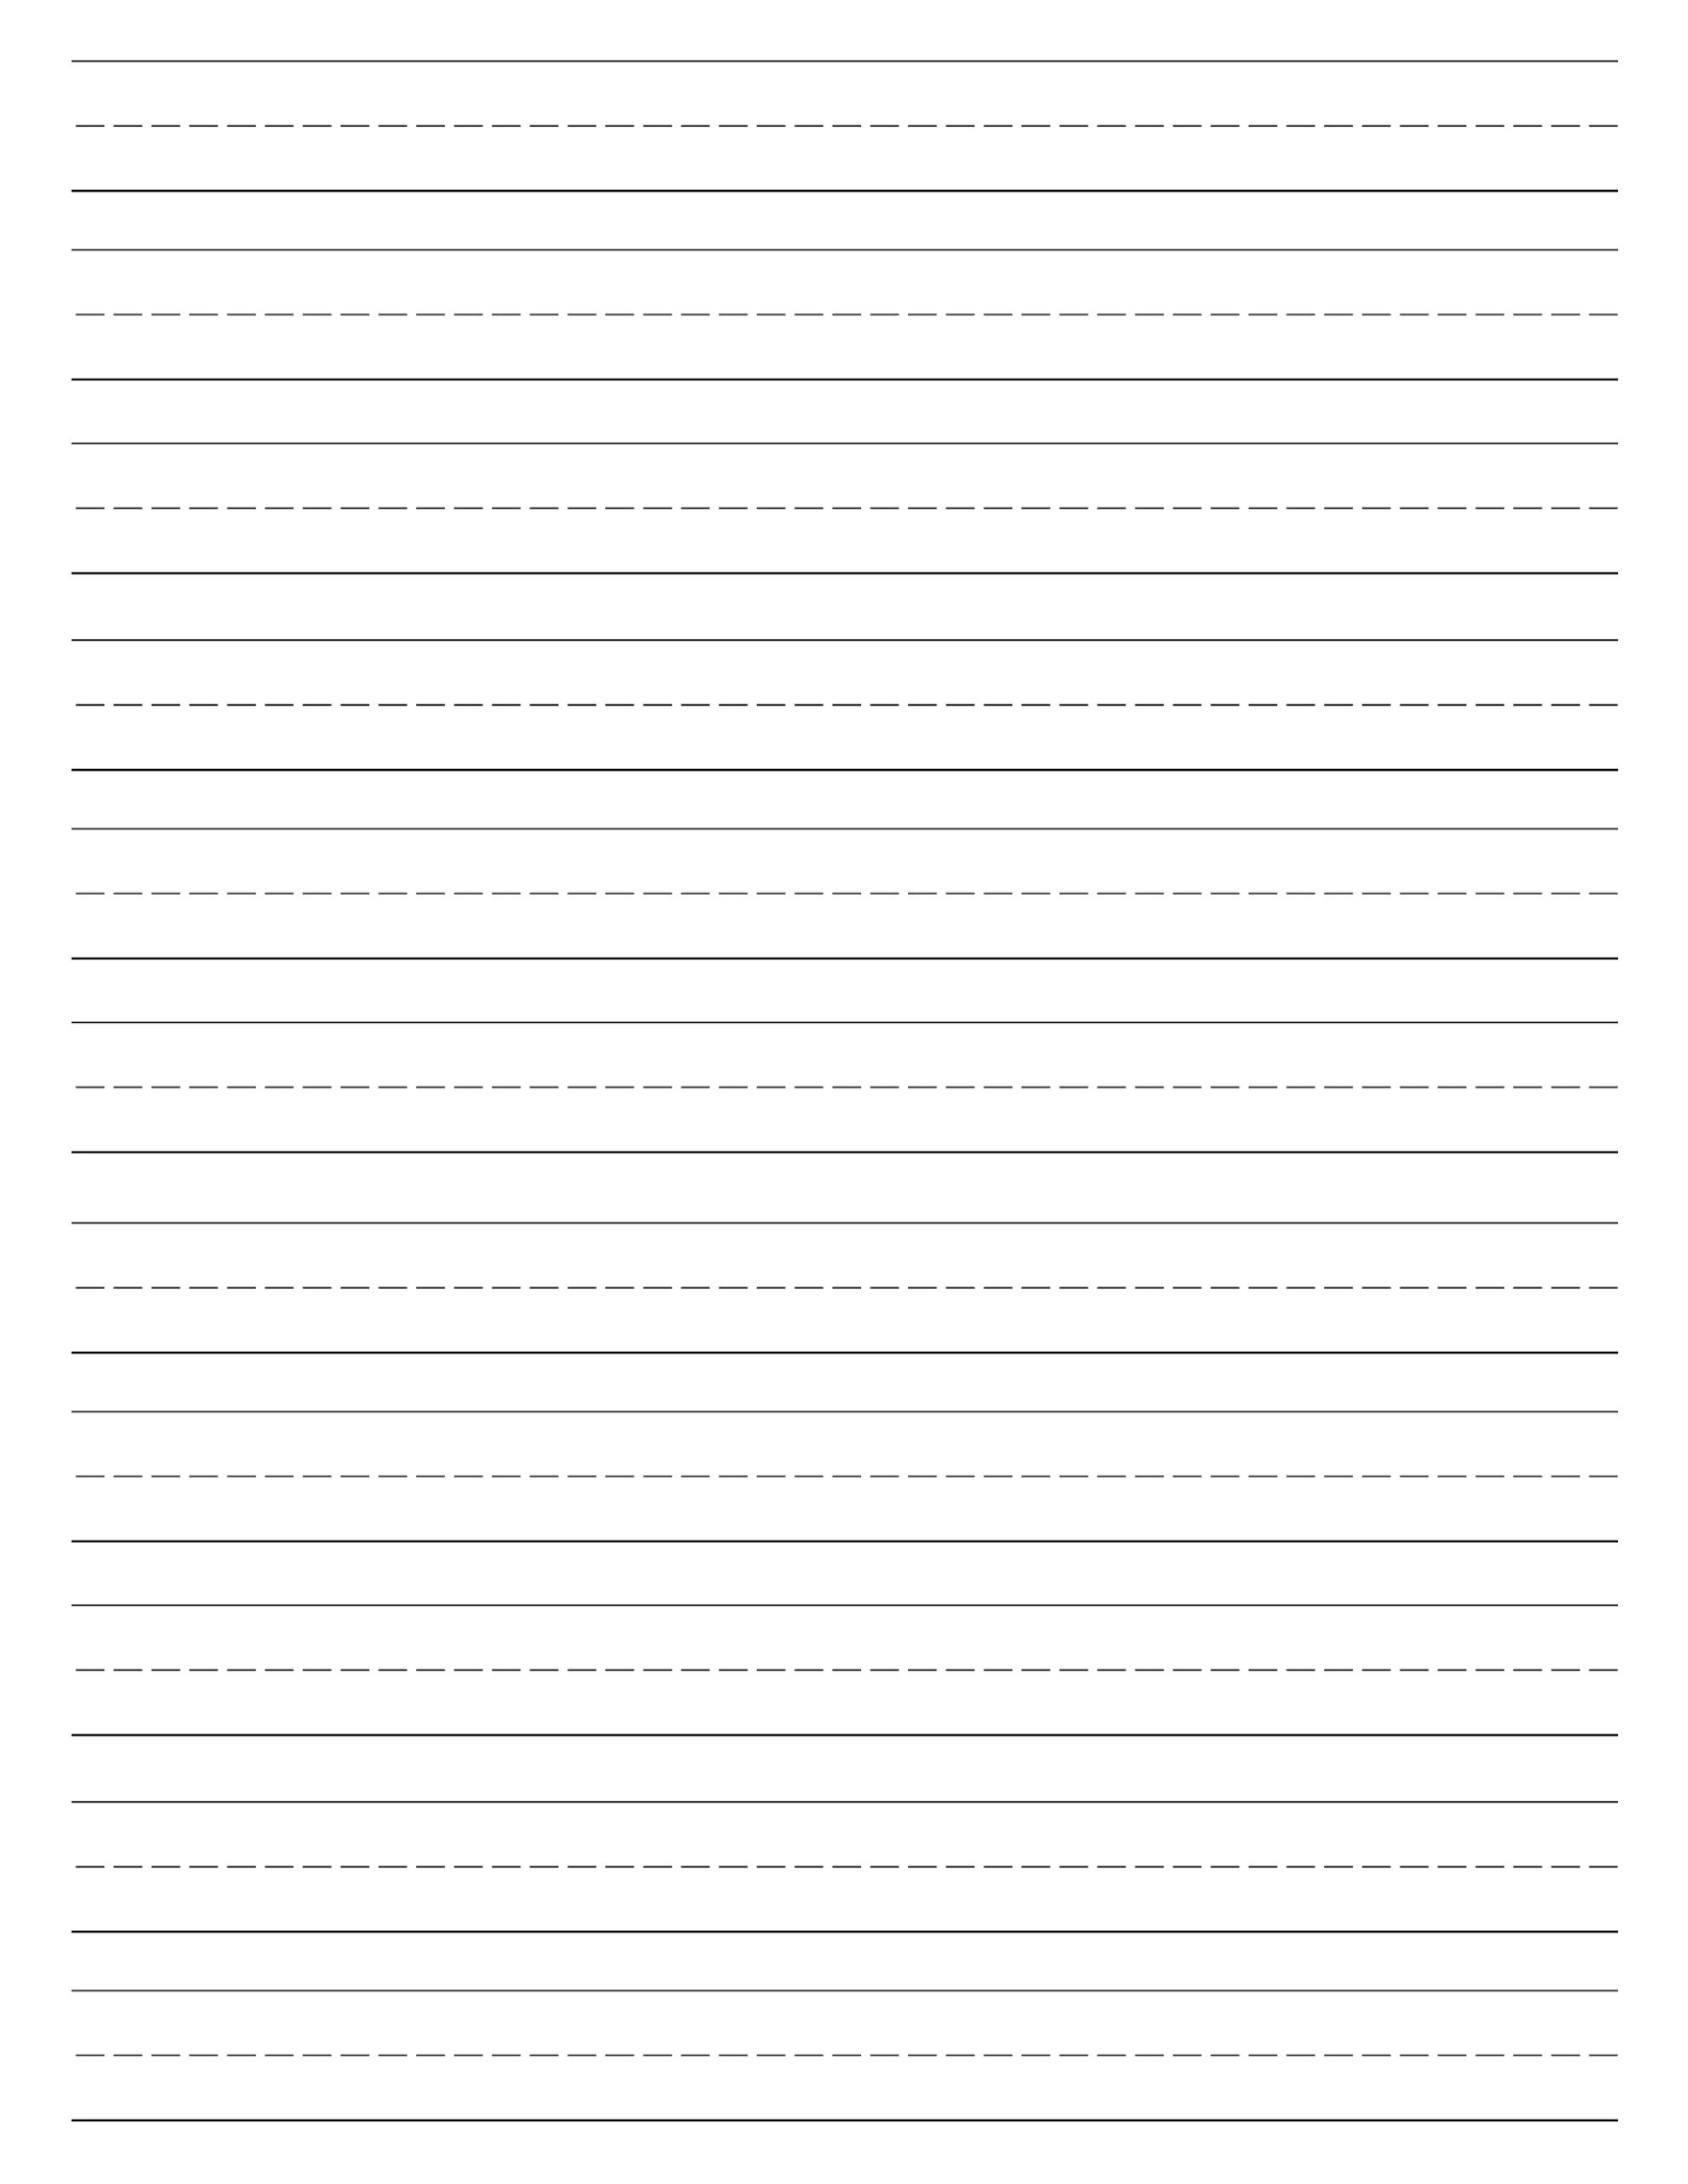 Handwriting Practice Worksheet Maker